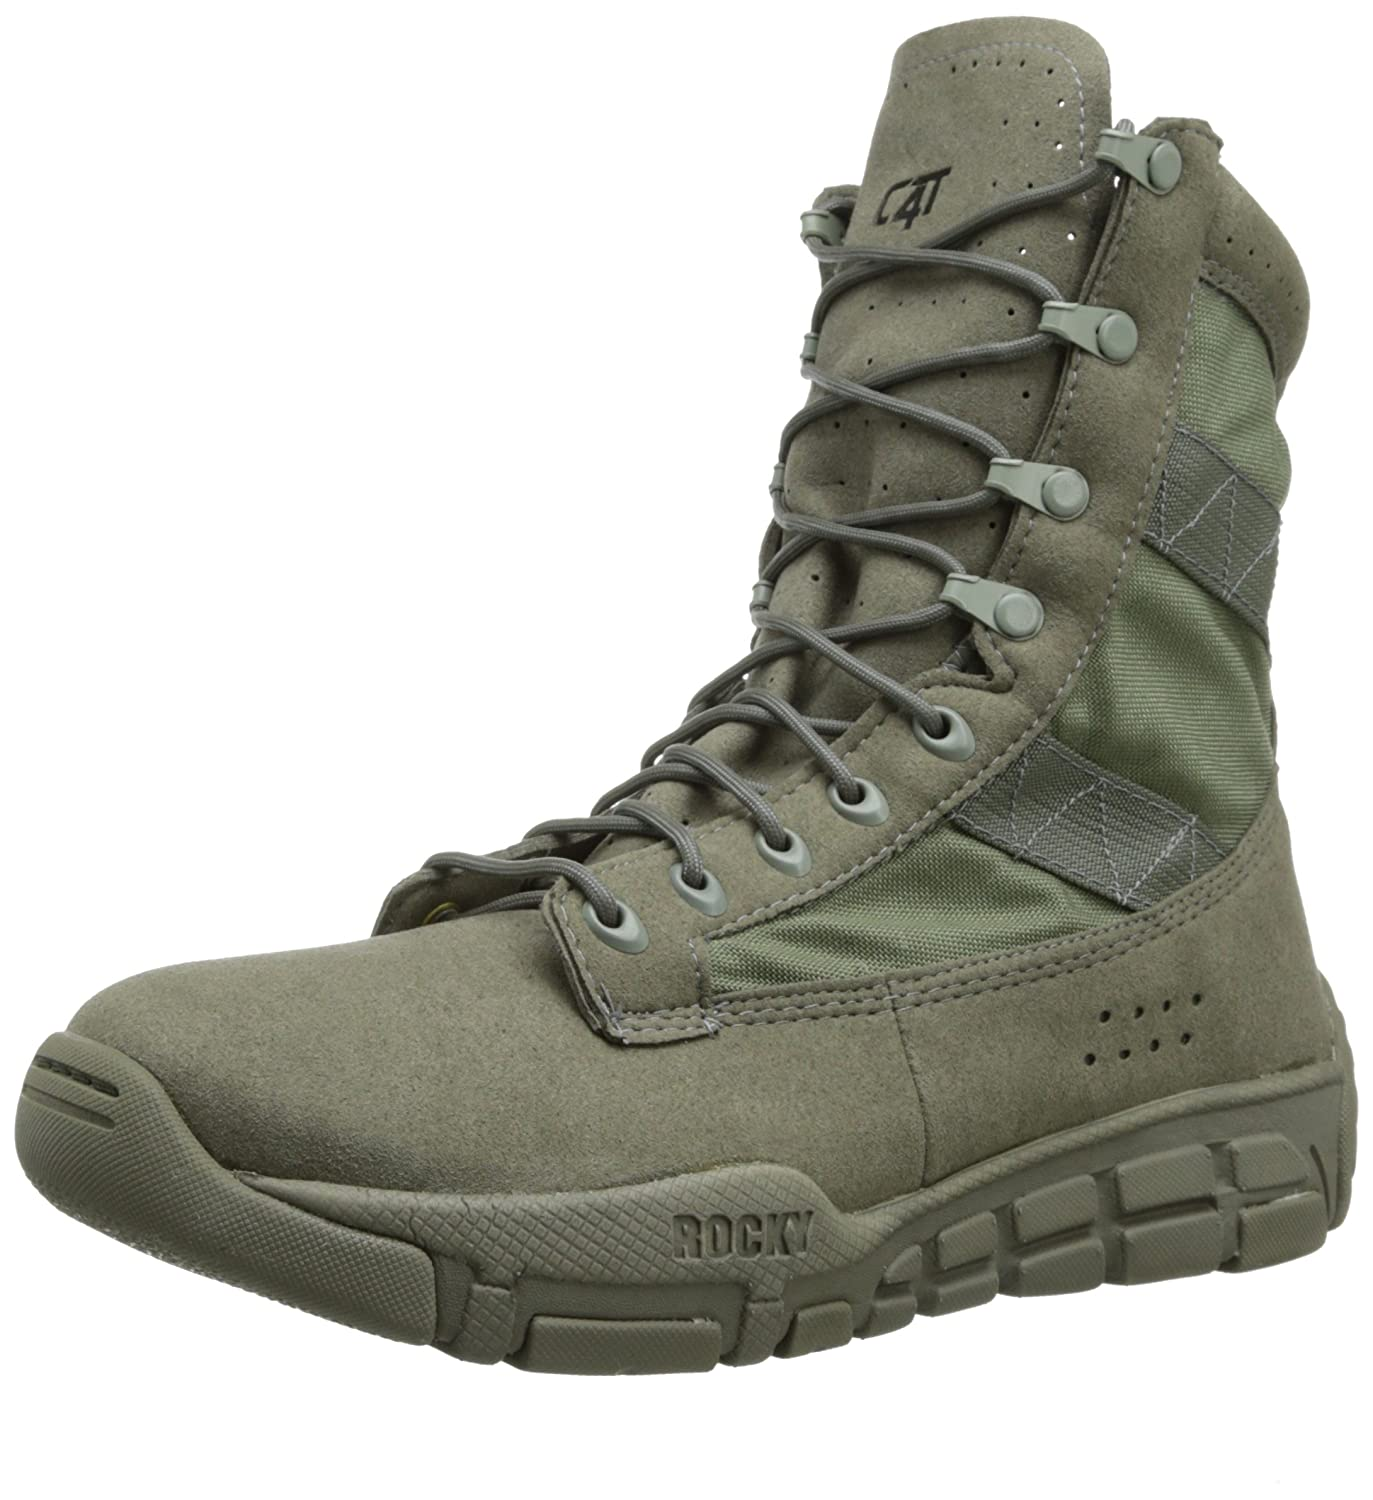 The 10 Best Lightweight Tactical Boots in 2018 - Reviewed ...